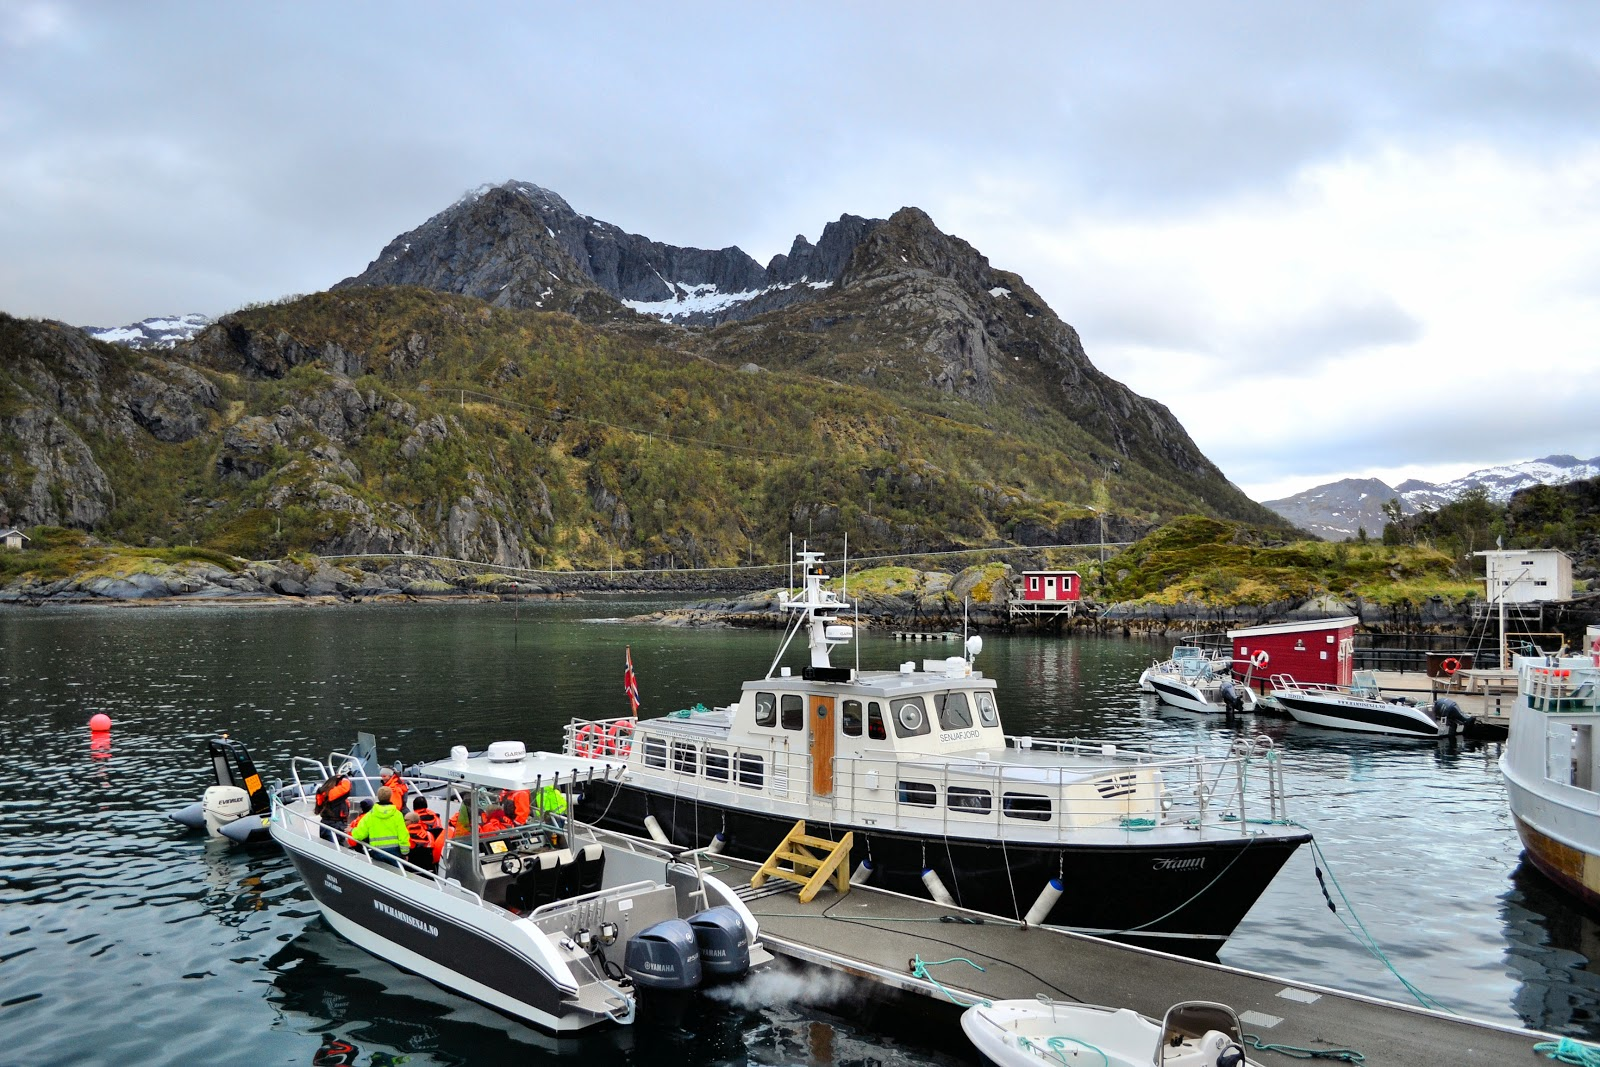 Hamn I Senja harbor is where we began our sea safari.